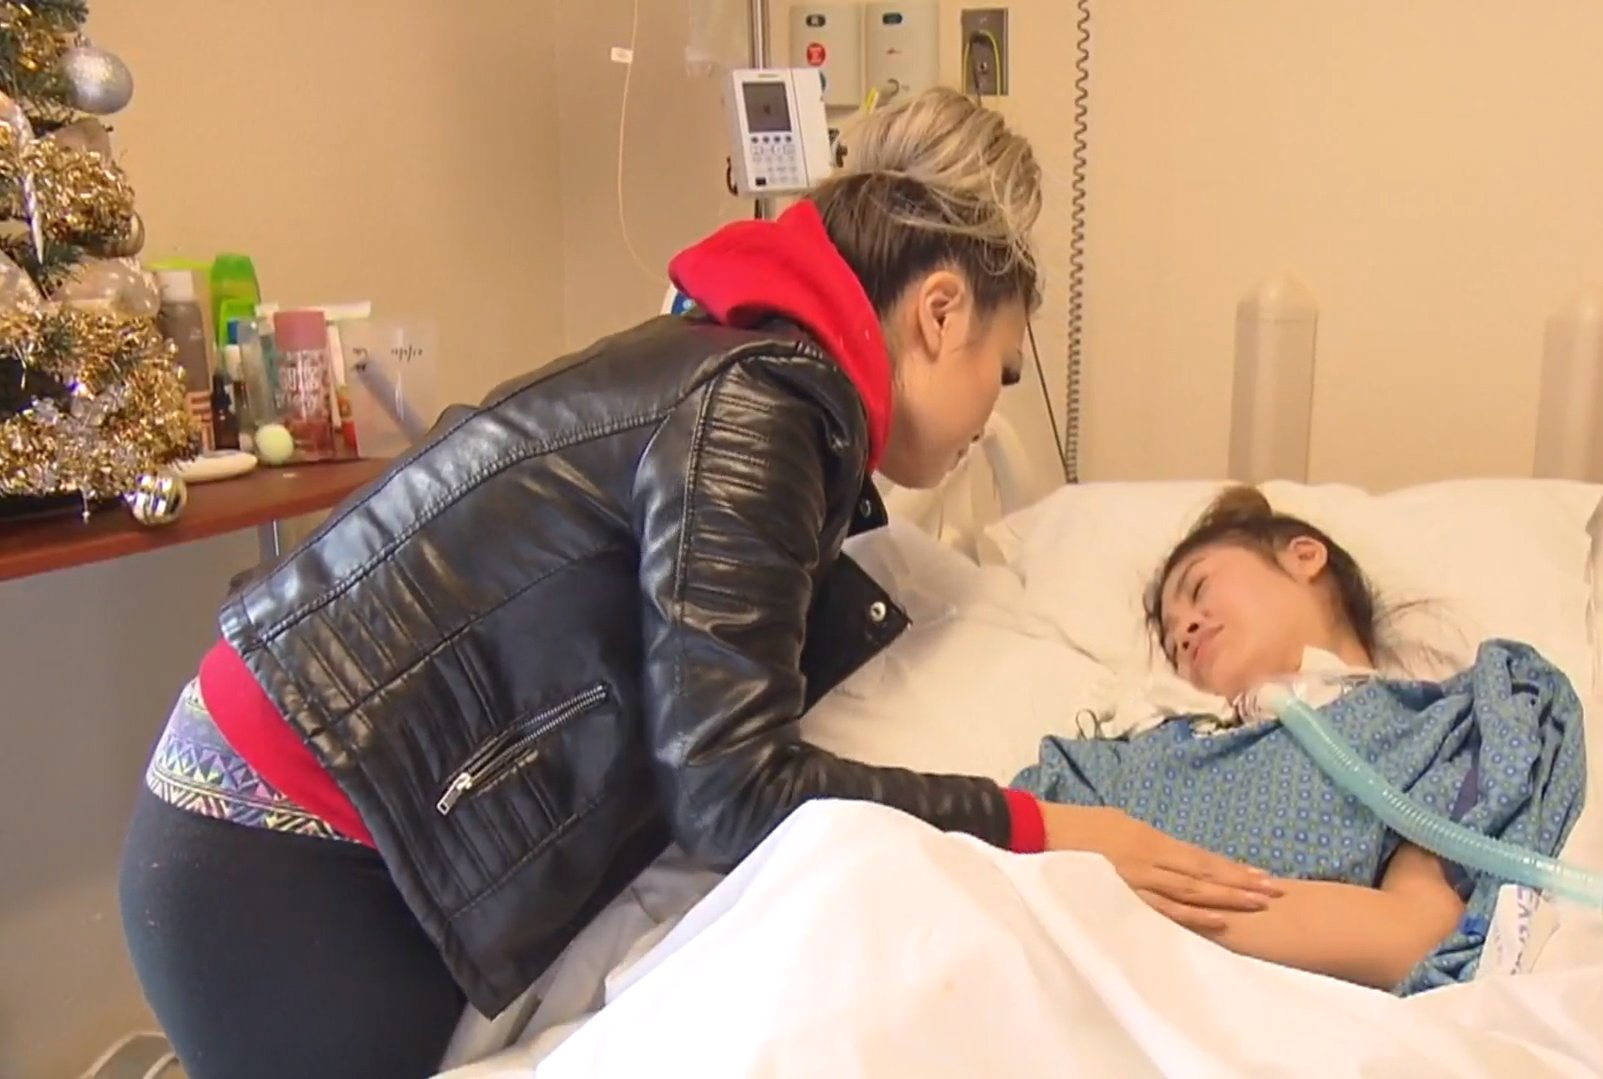 Cosmetic Surgery Leaves Teen Brain Damaged Mother Just Wants Daughter Back Ctv News